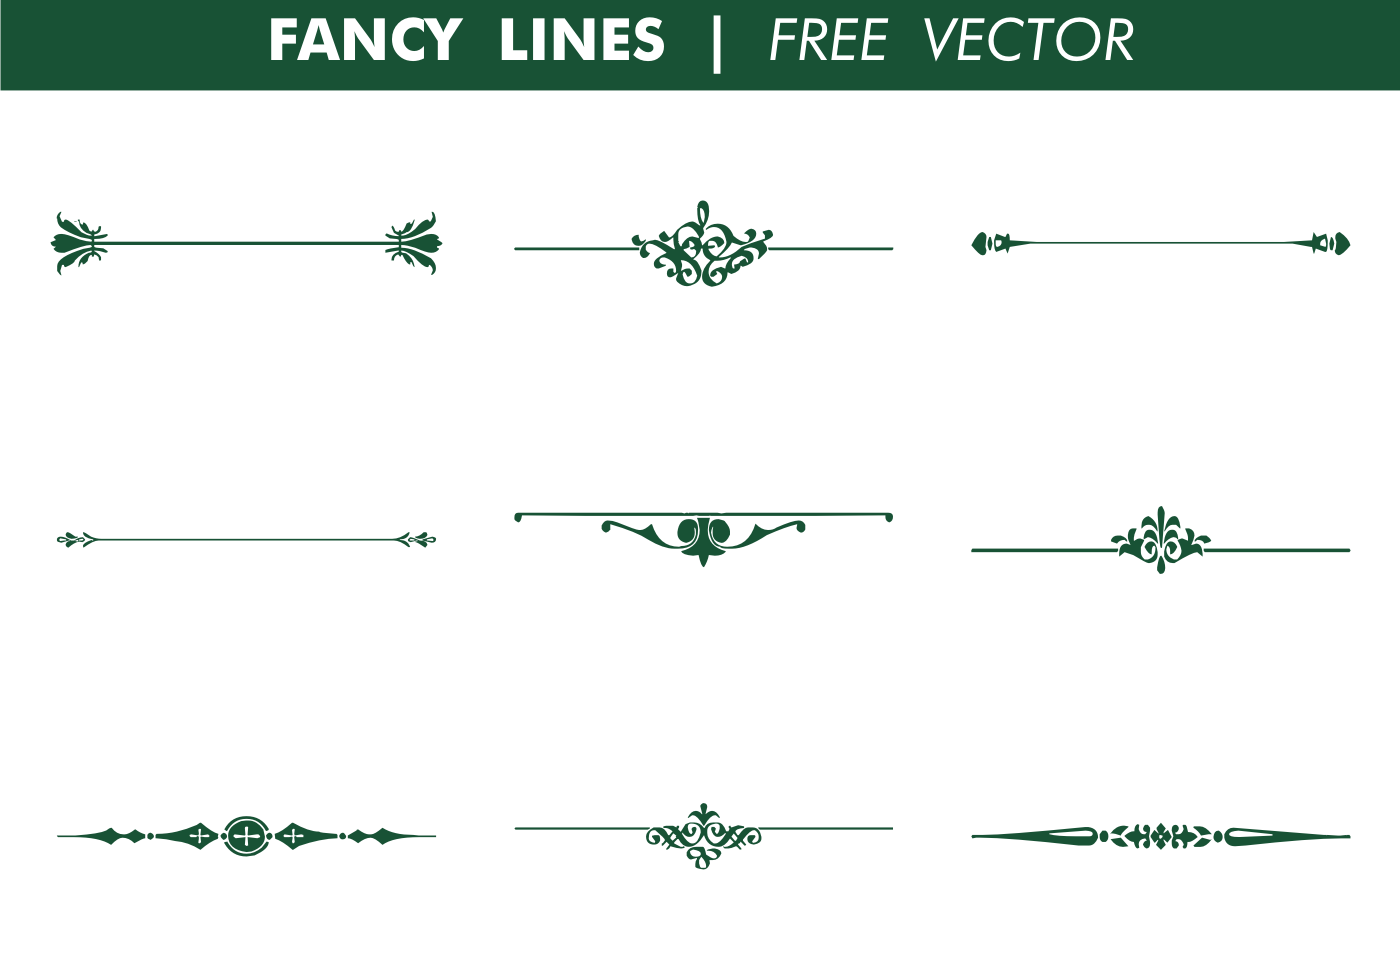 Vector Drawing Lines Review : Decorative fancy lines free vector download